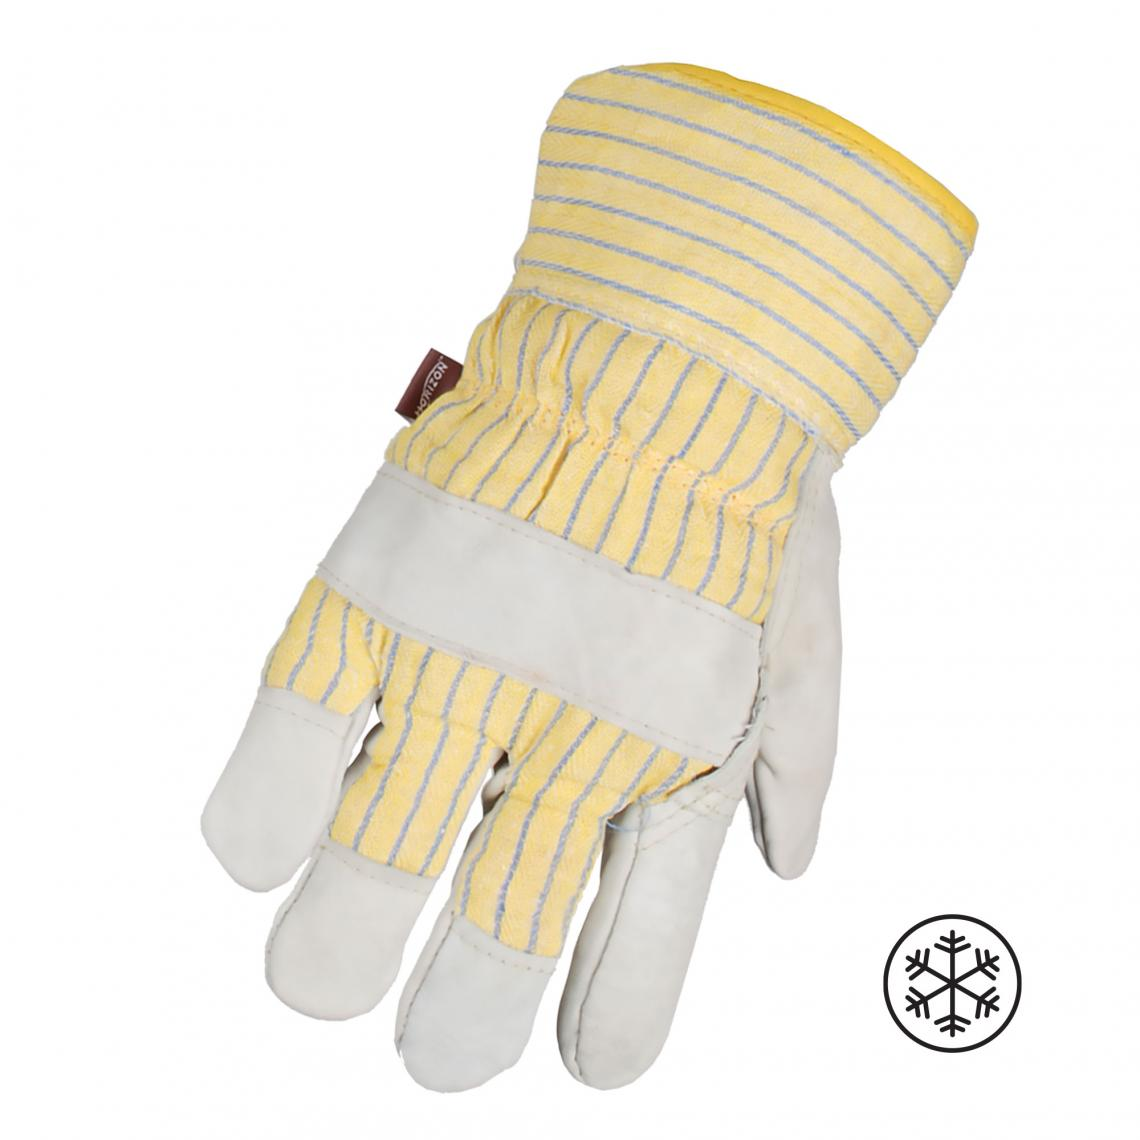 Gloves - Horizon Cowhide Leather, Foam and Fleece Lined Winter Work Glove - O/S